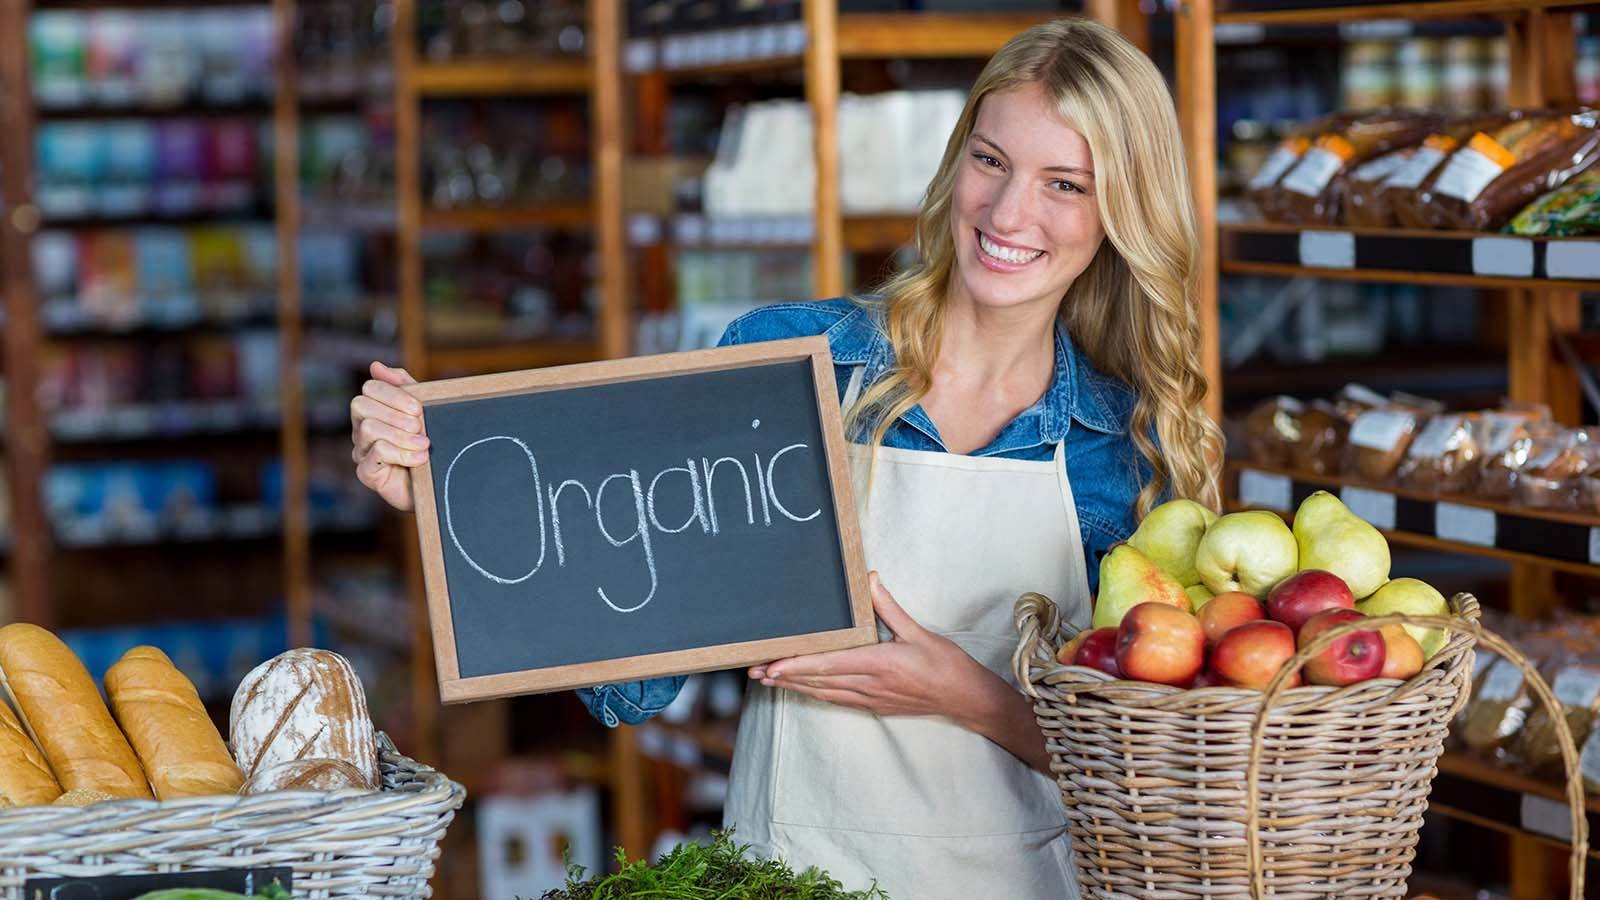 Transform Your Lifestyle with Healthy Organic Food